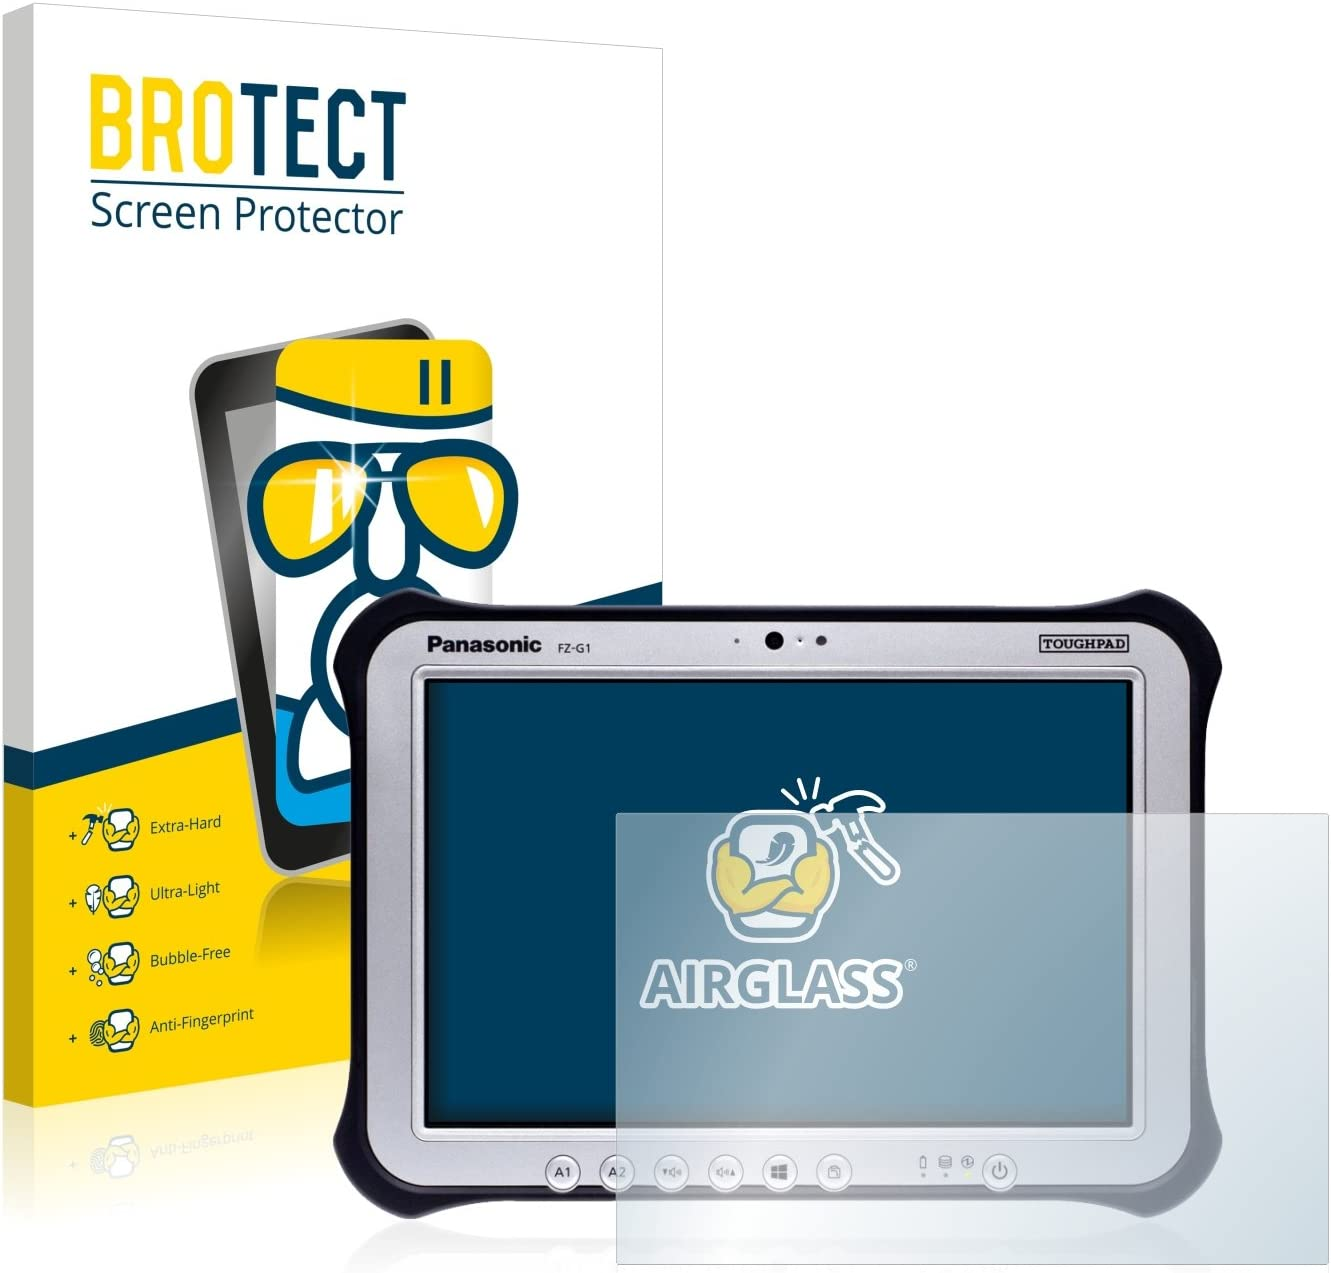 AirGlass Extreme Scratch Resistant brotect Glass Screen Protector compatible with Apple MacBook Pro 13 2020 Glass Protector